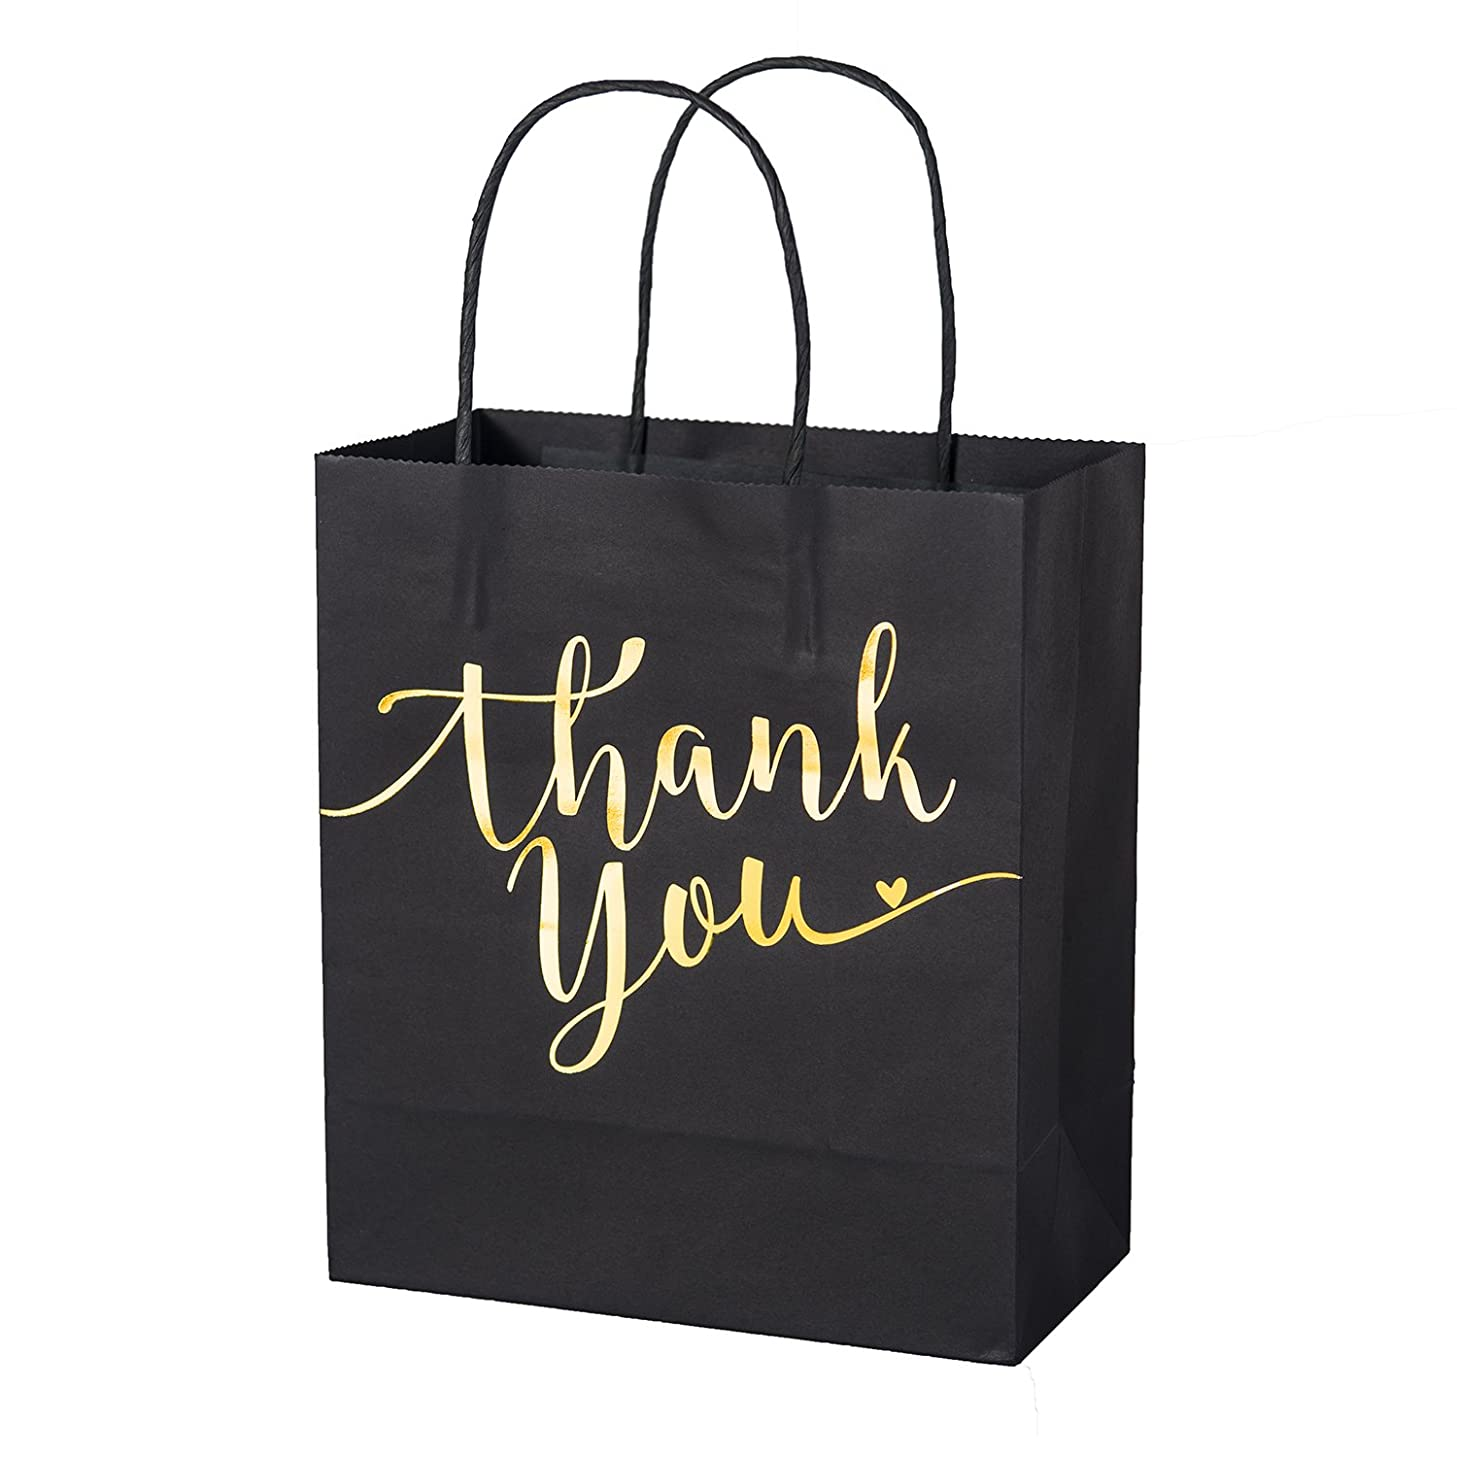 Ling's Moment Set of 25 Black Gold Foil Thank You Gift Bags for Wedding Welcome Bags, Thanksgiving Christmas Holiday Party Business Gift Bags